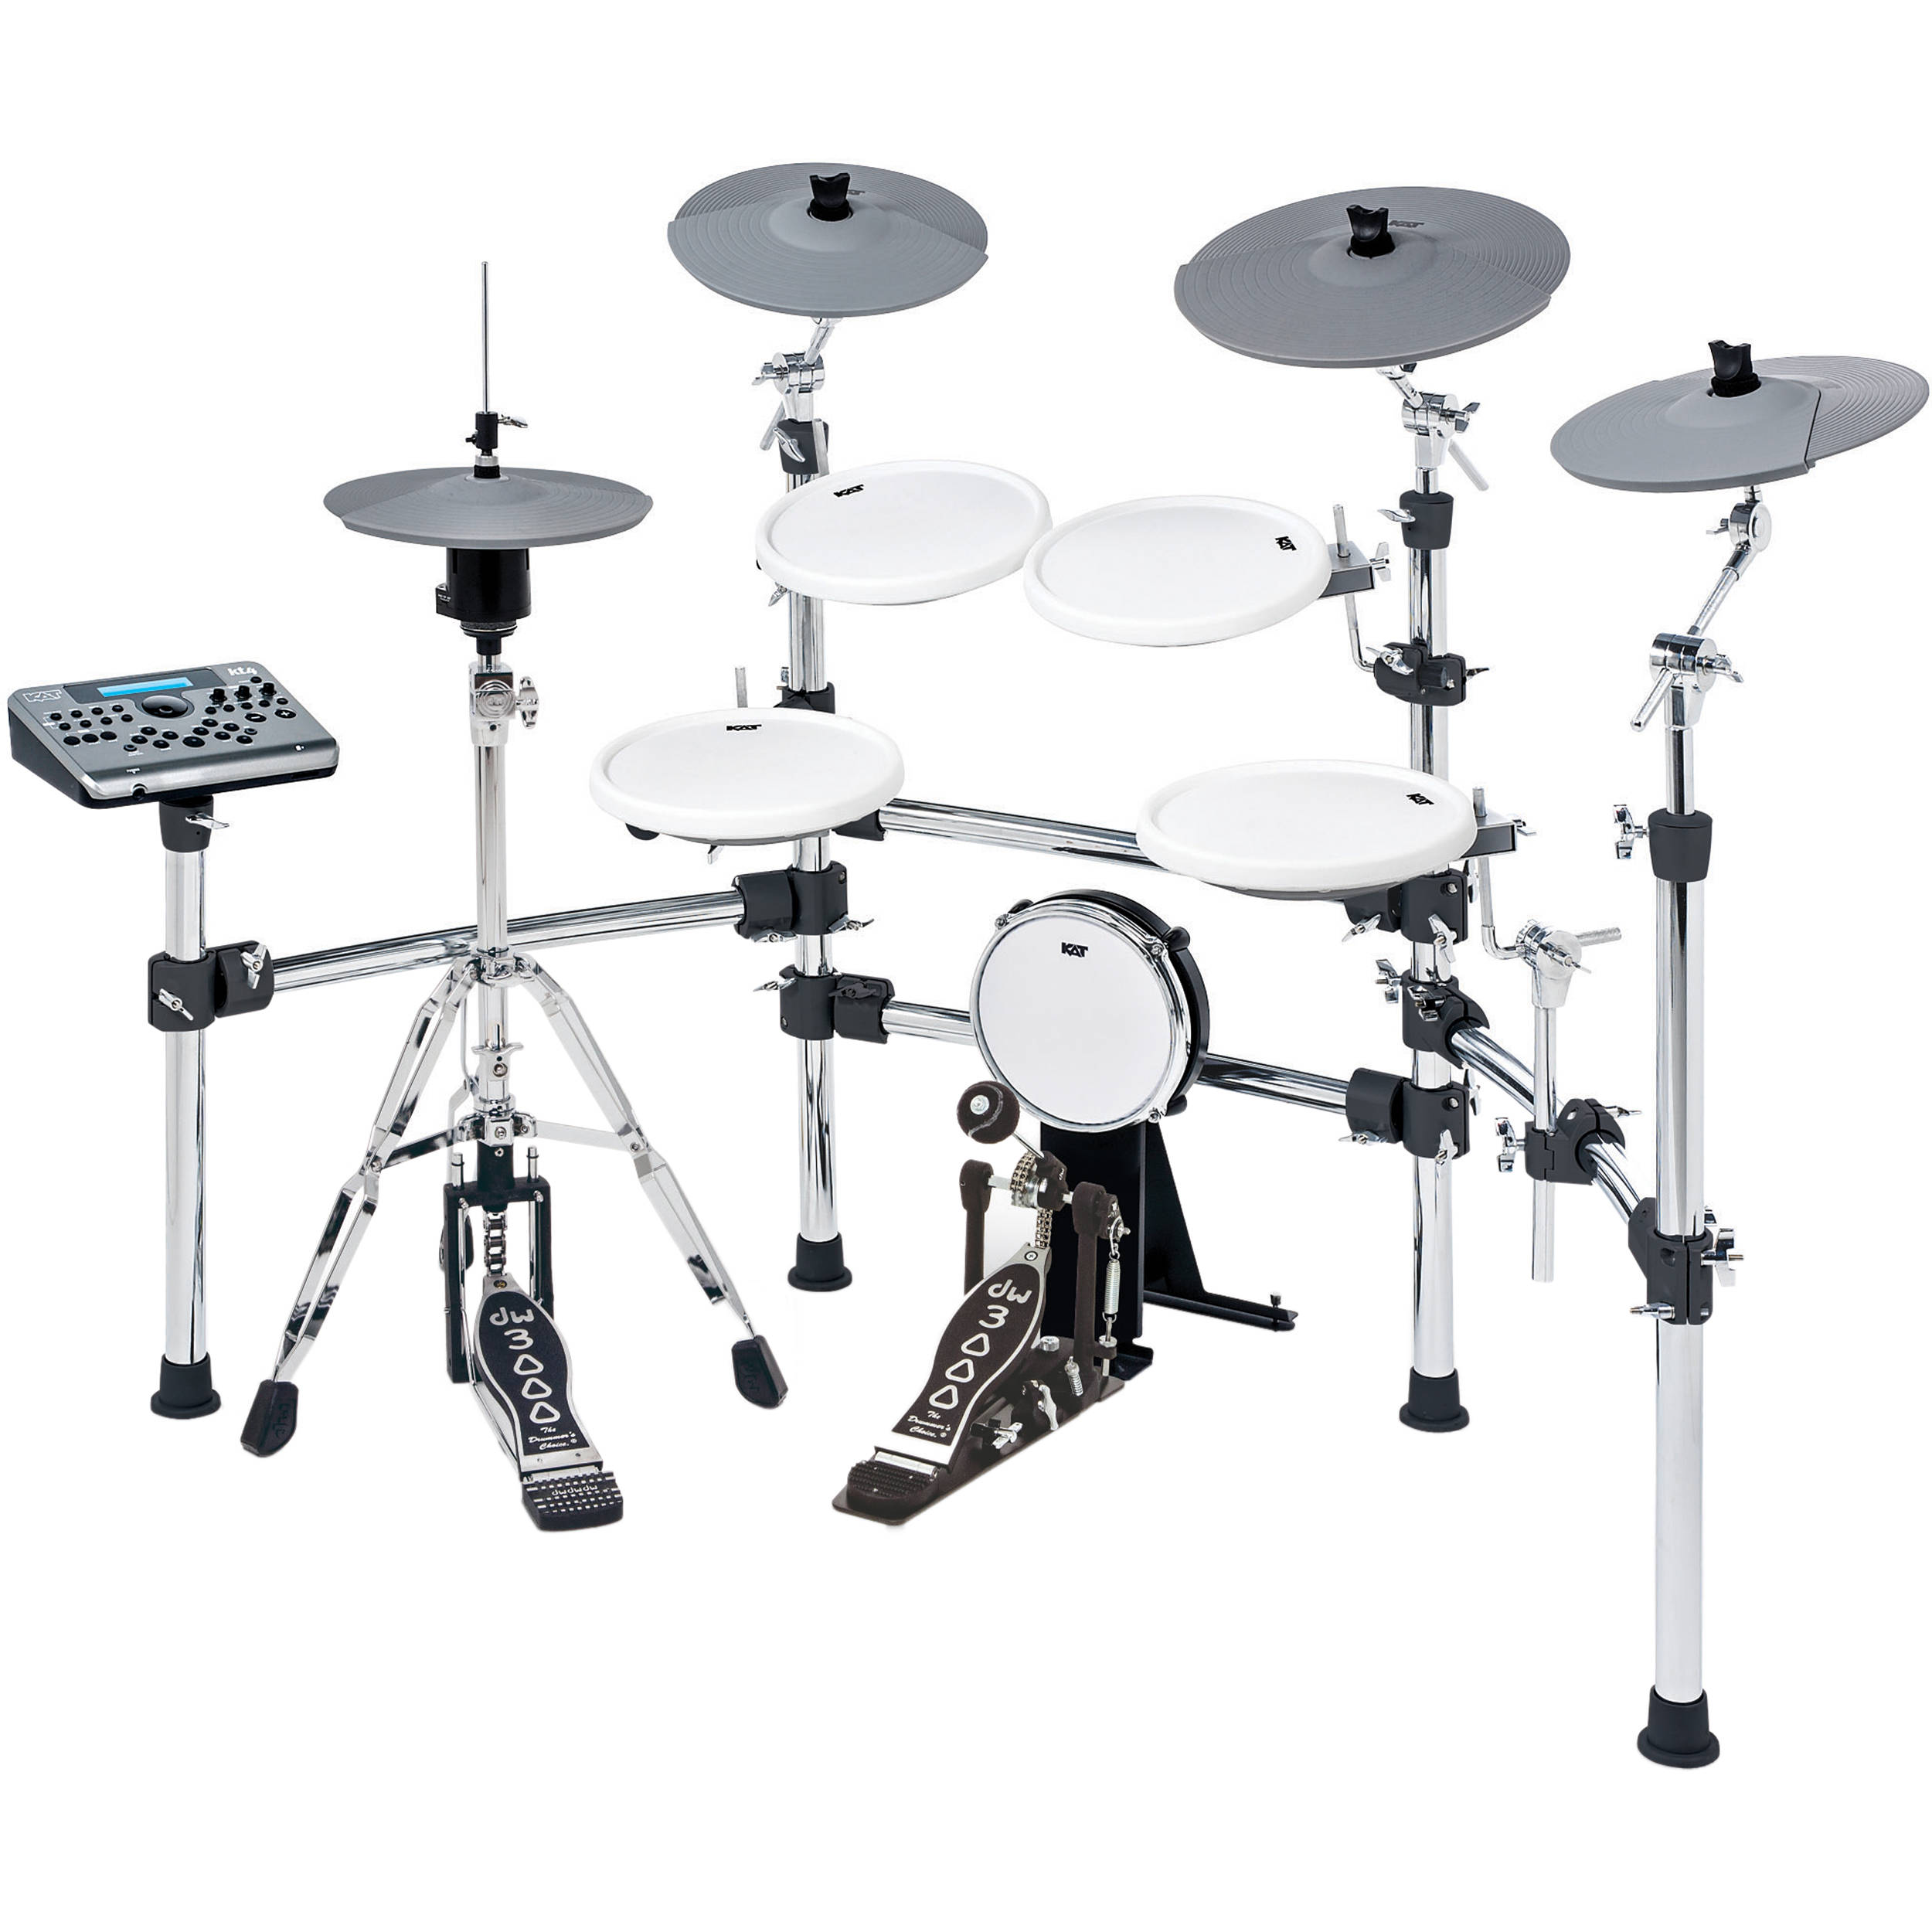 registration key mt power drumkit 2